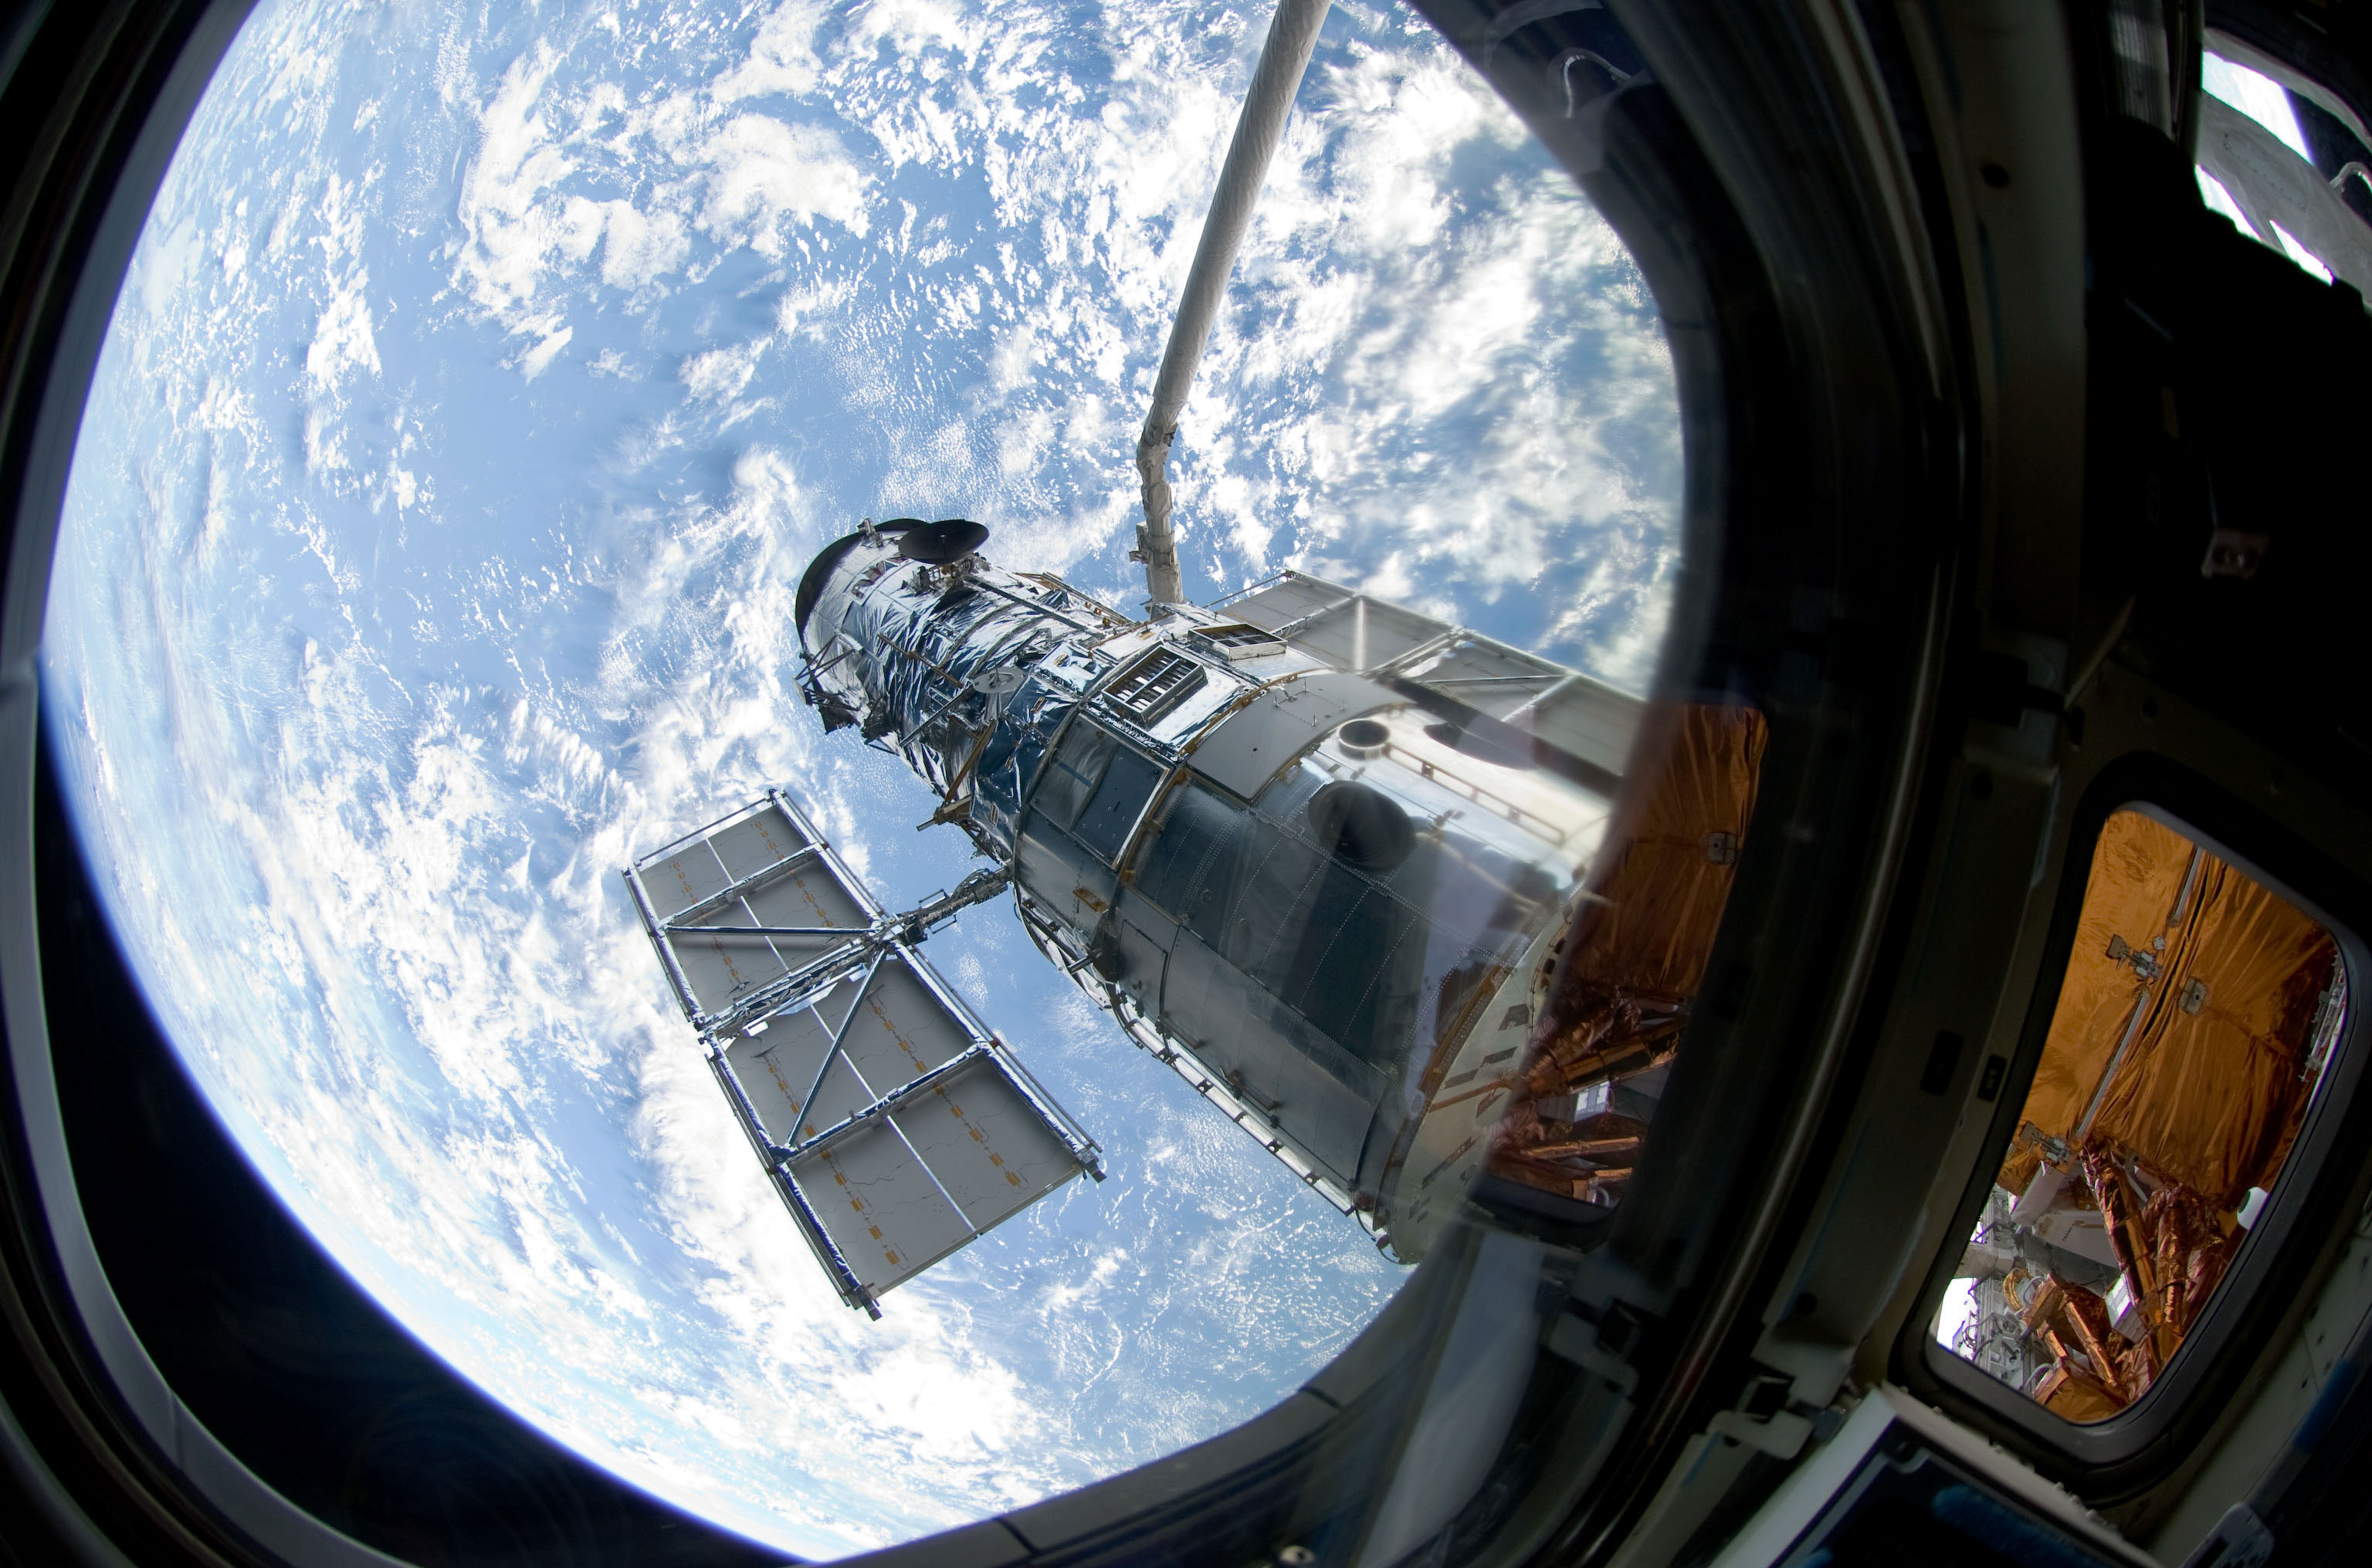 An STS-125 crewmember onboard Atlantis snapped a still photo of the Hubble Space Telescope following grapple of the giant observatory by the shuttle's Canadian-built remote manipulator system. Credit: NASA